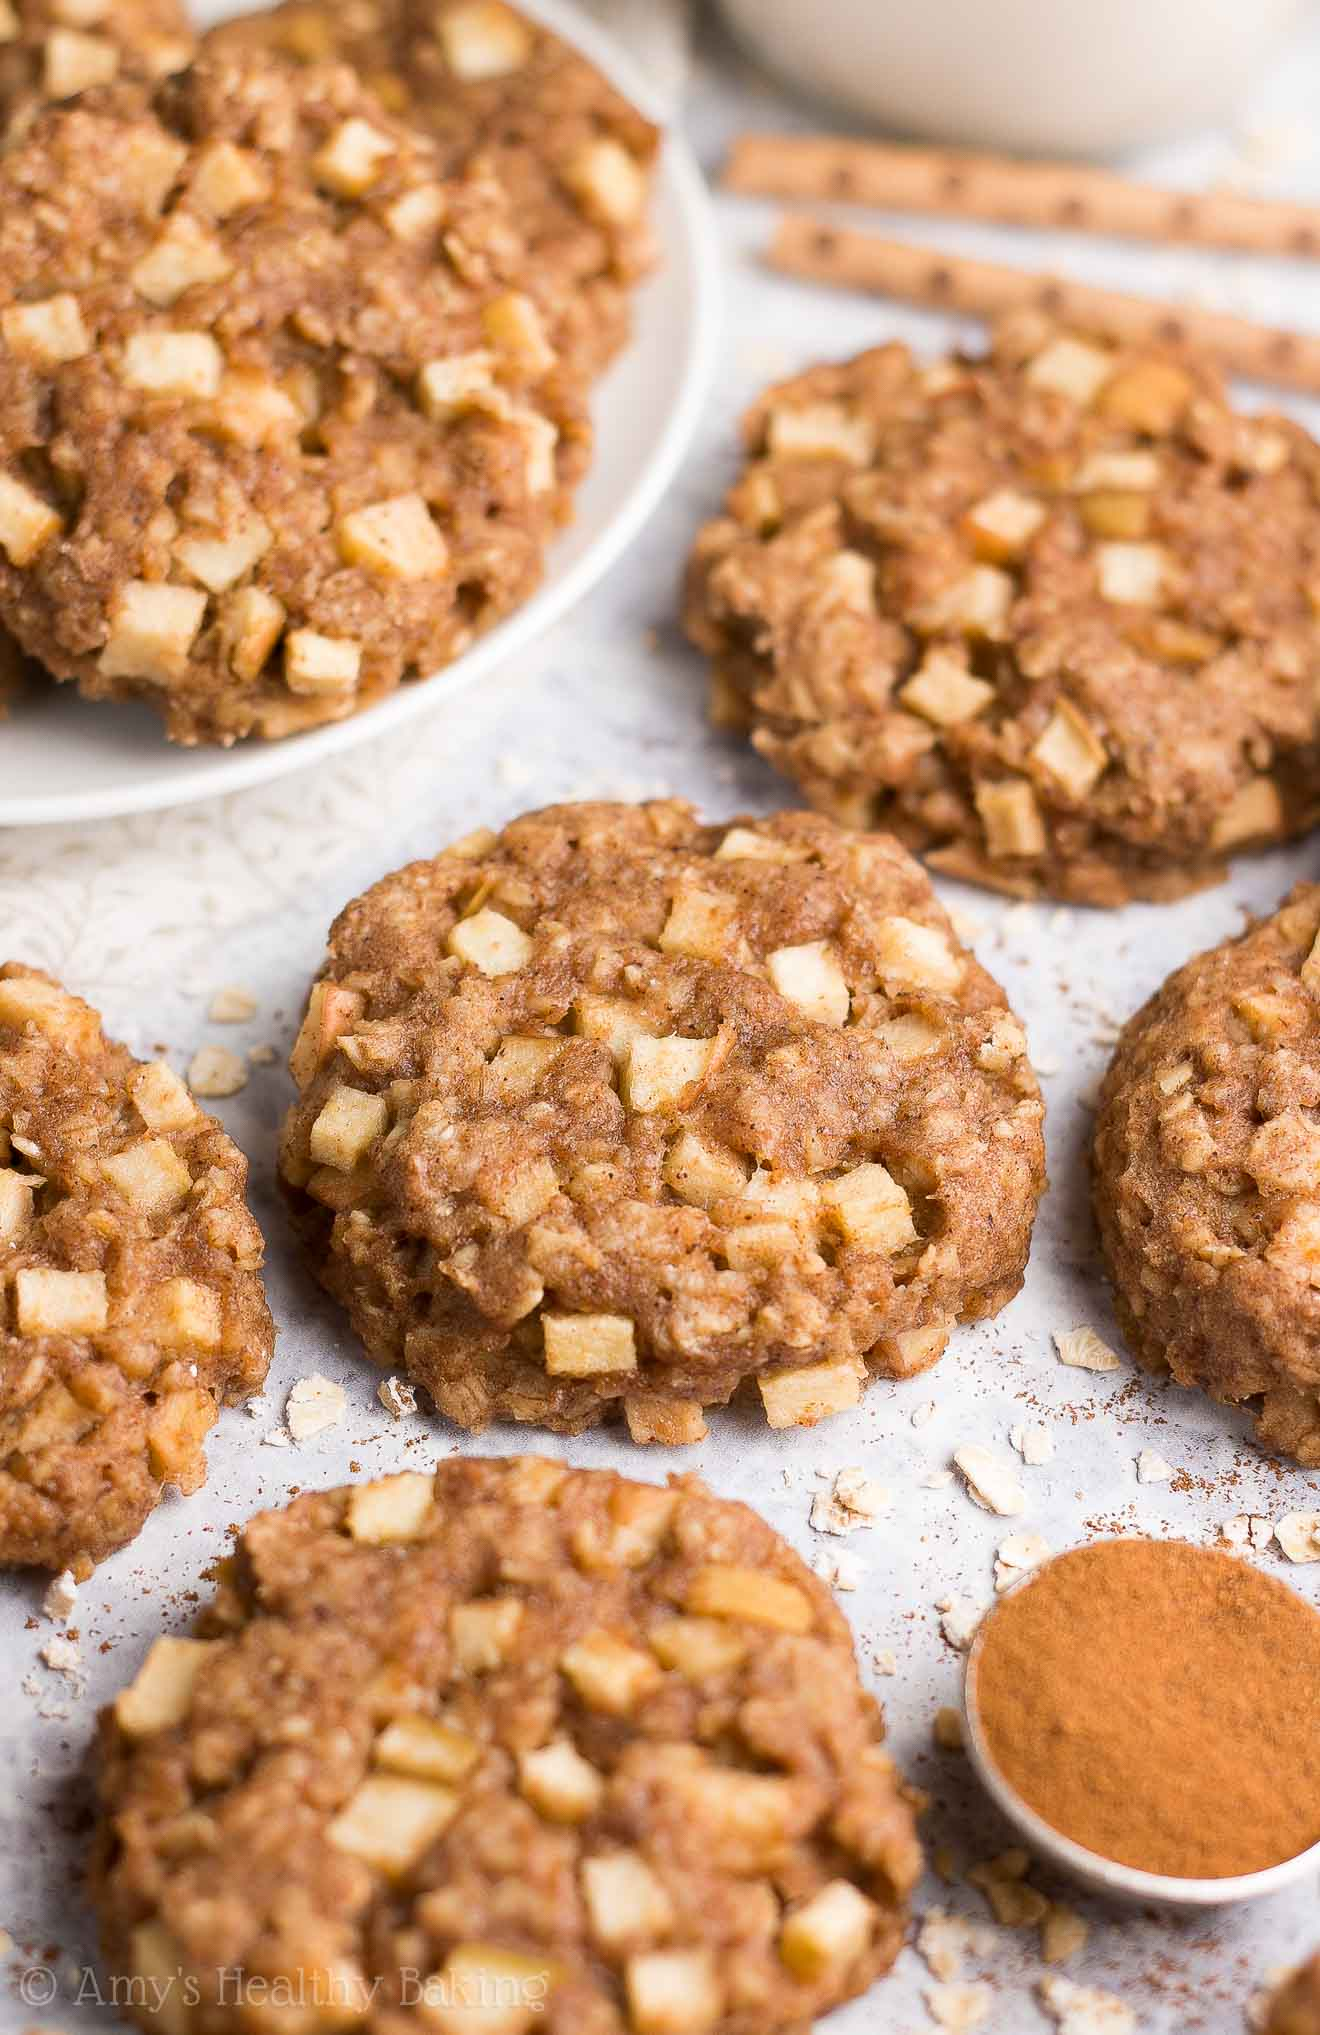 {HEALTHY!} Apple Pie Oatmeal Breakfast Cookies -- only 71 calories! Soft, chewy & so easy to make! They're perfect for kids & quick grab-and-go breakfasts! (And they freeze well too!) #healthy #recipe #breakfast #oatmealcookies